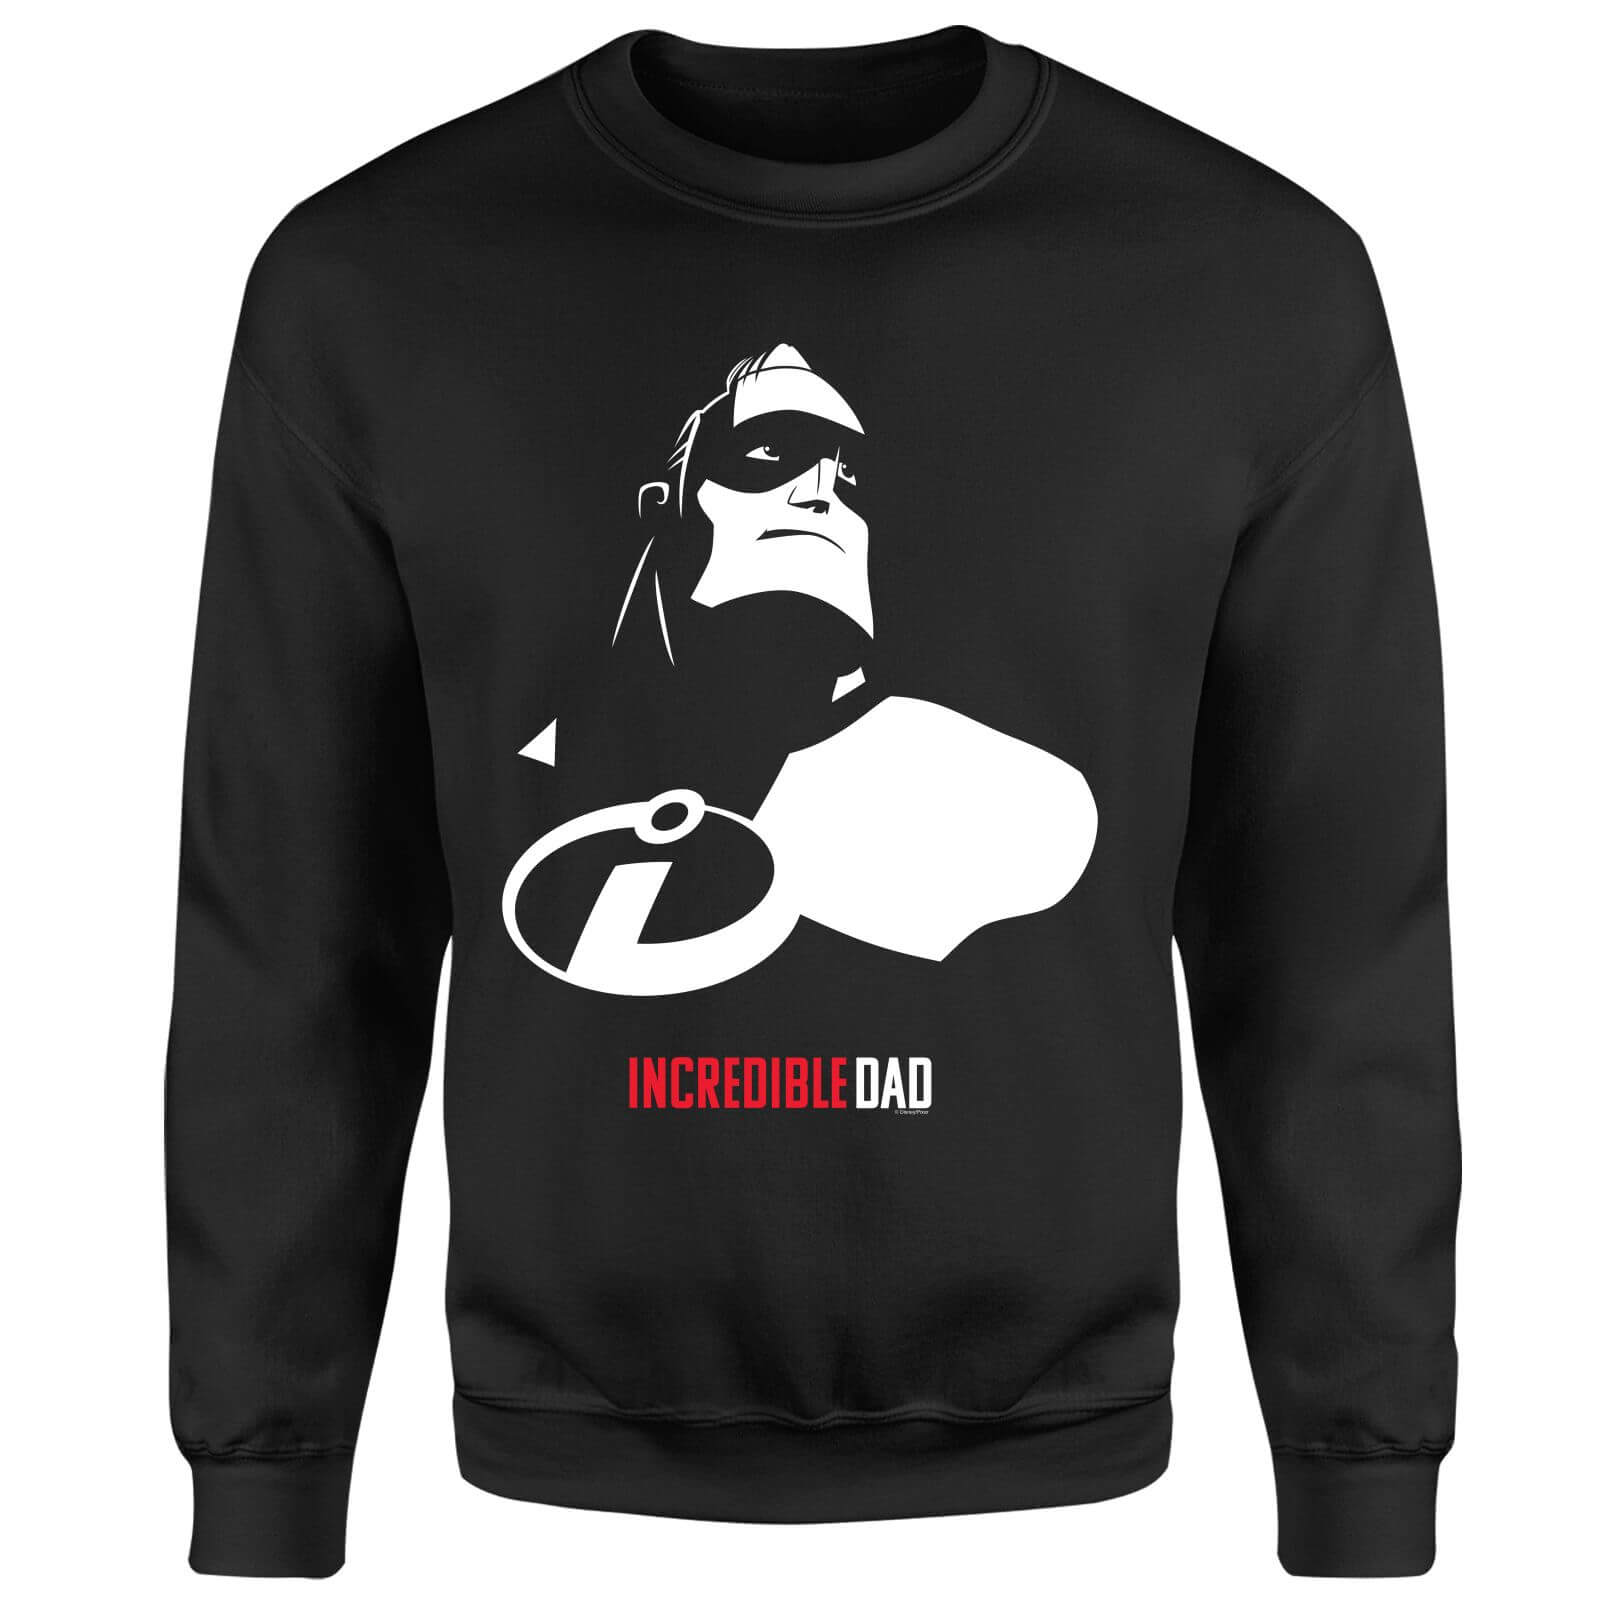 The Incredibles 2 Incredible Dad Sweatshirt - Black